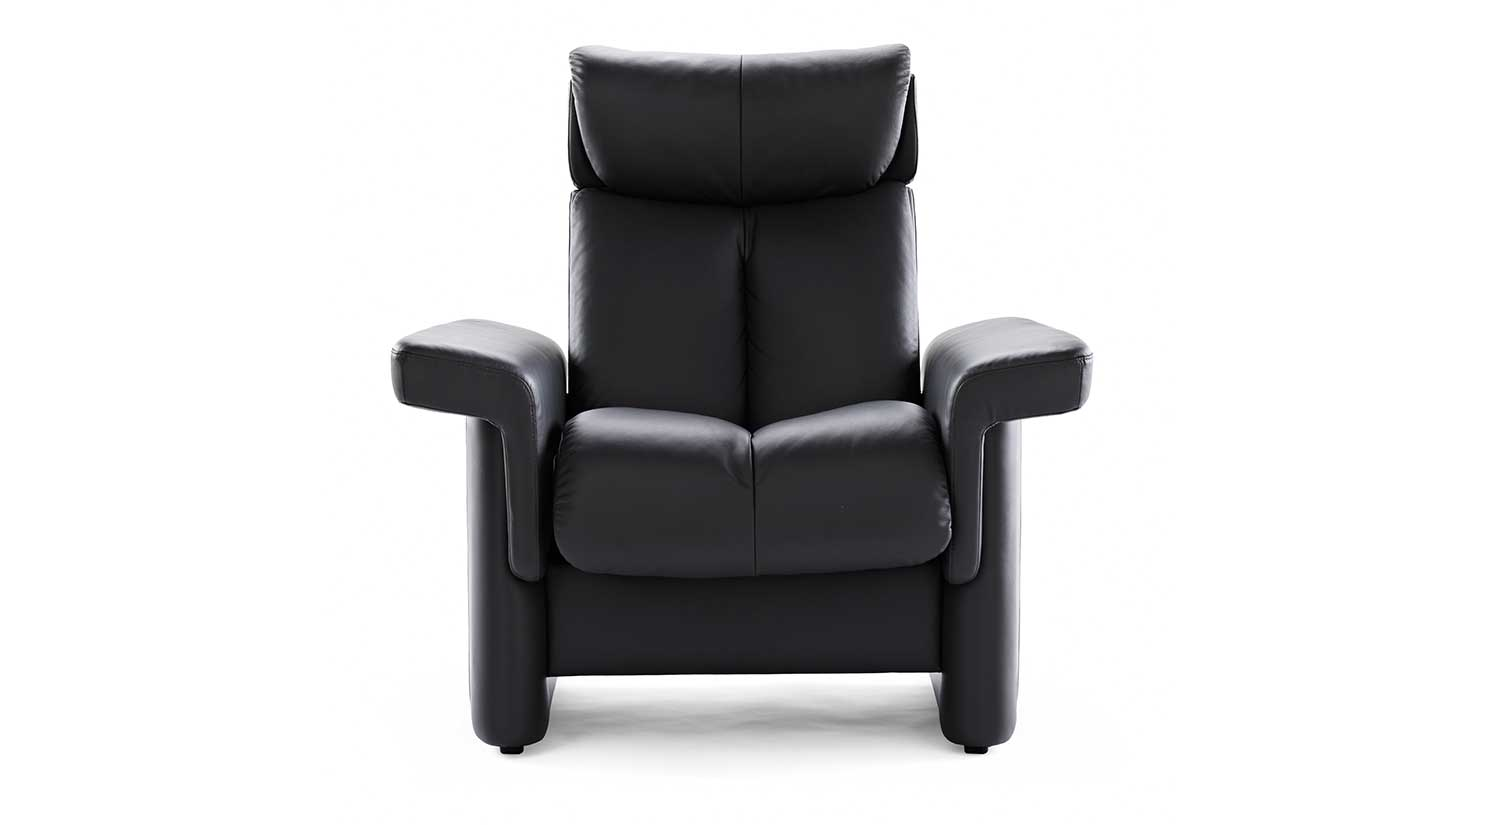 Legend Stressless Highback Chair